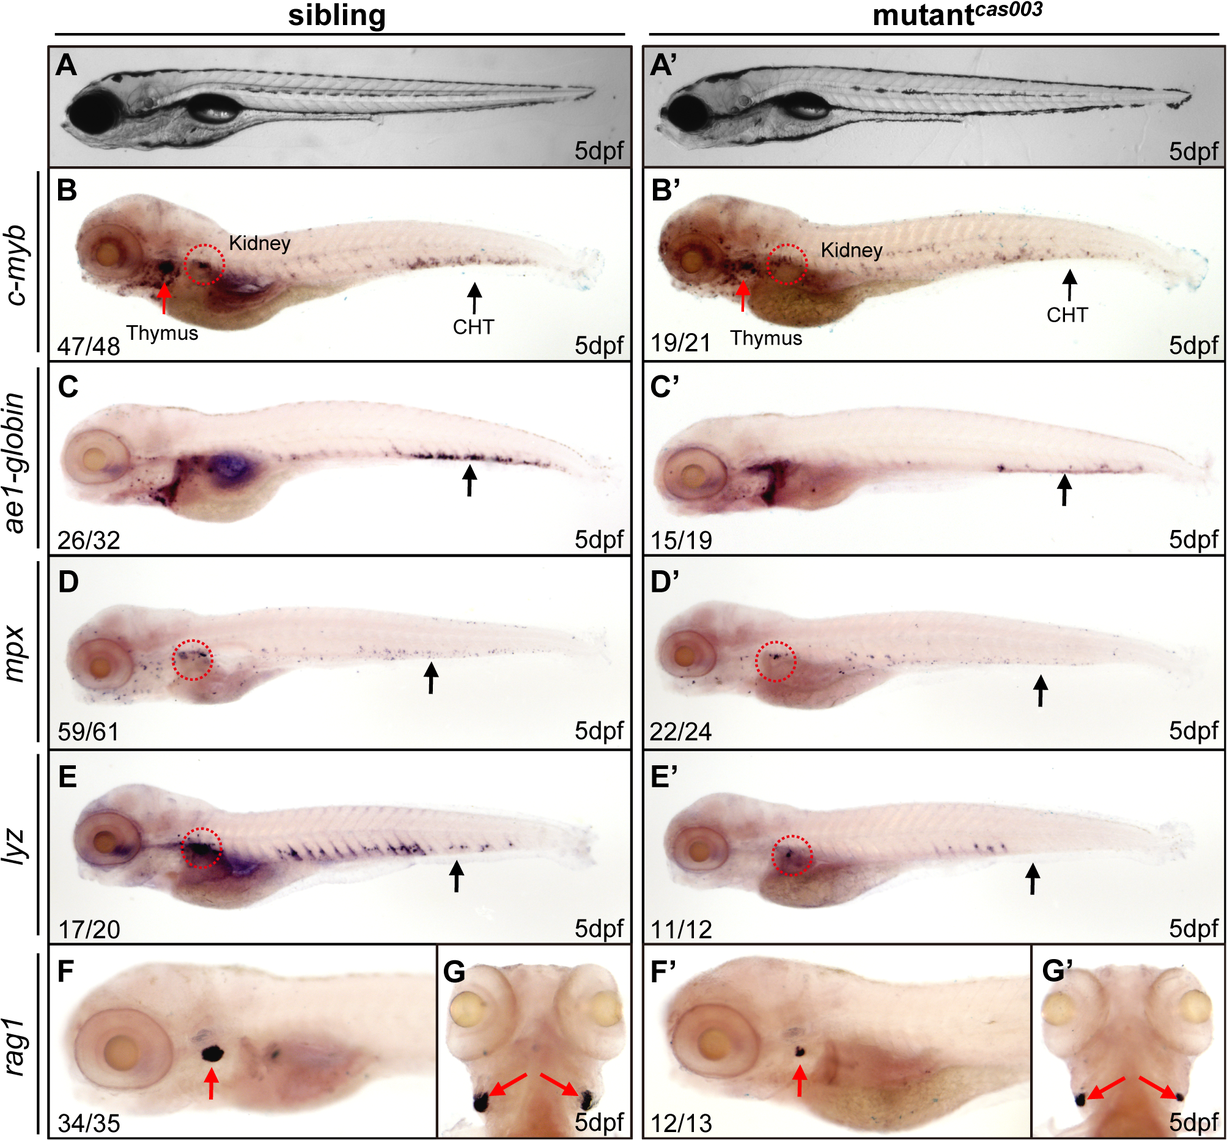 The definitive hematopoiesis is defective in zebrafish mutant<sup><i>cas003</i></sup> embryos.